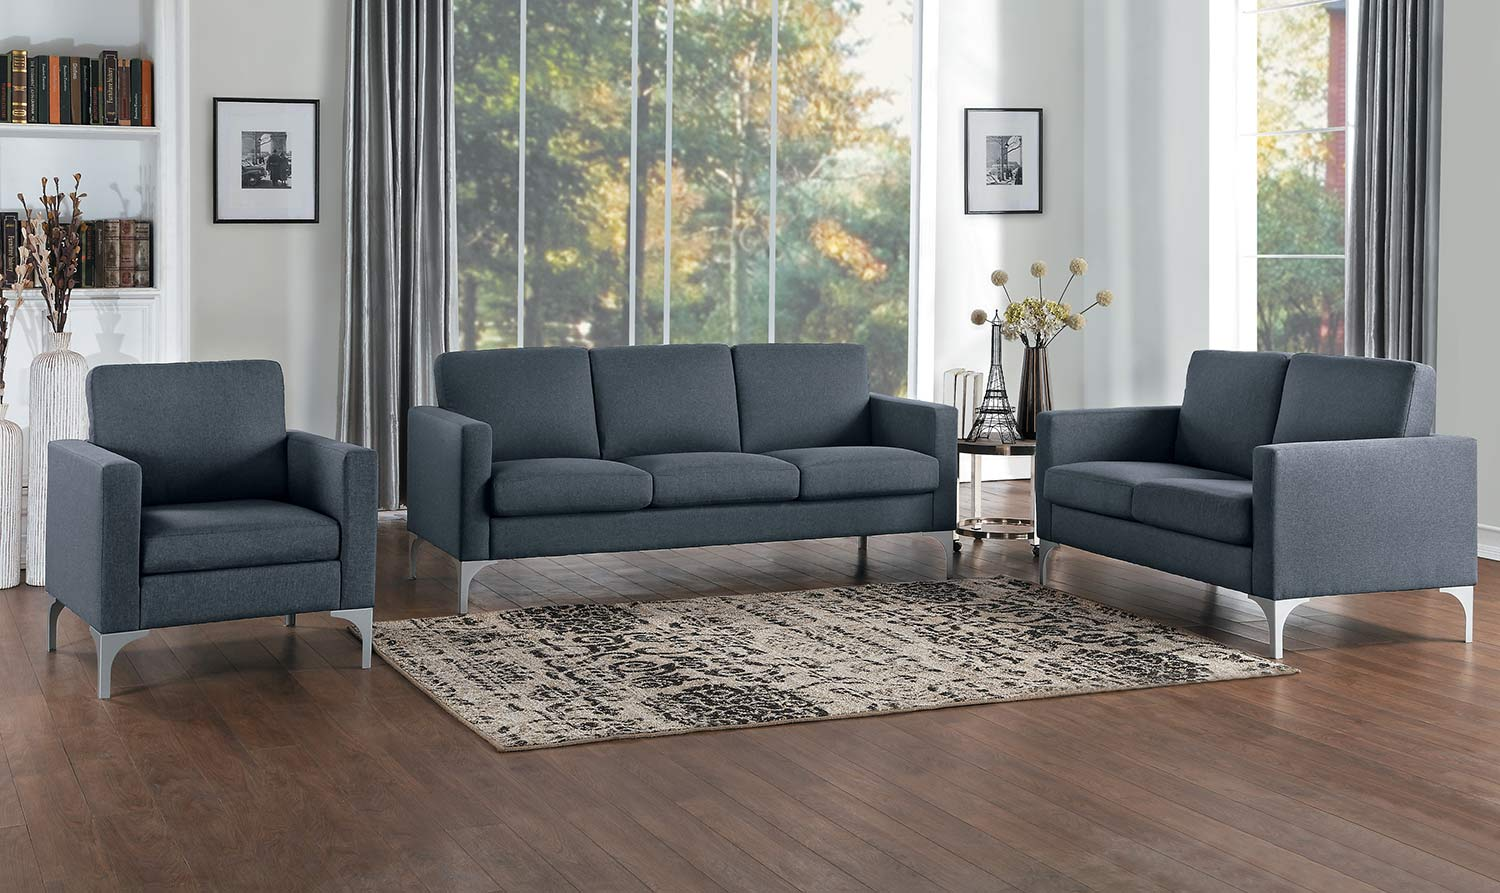 Homelegance Soho Sofa Set   Dark Gray   Brownish Gray